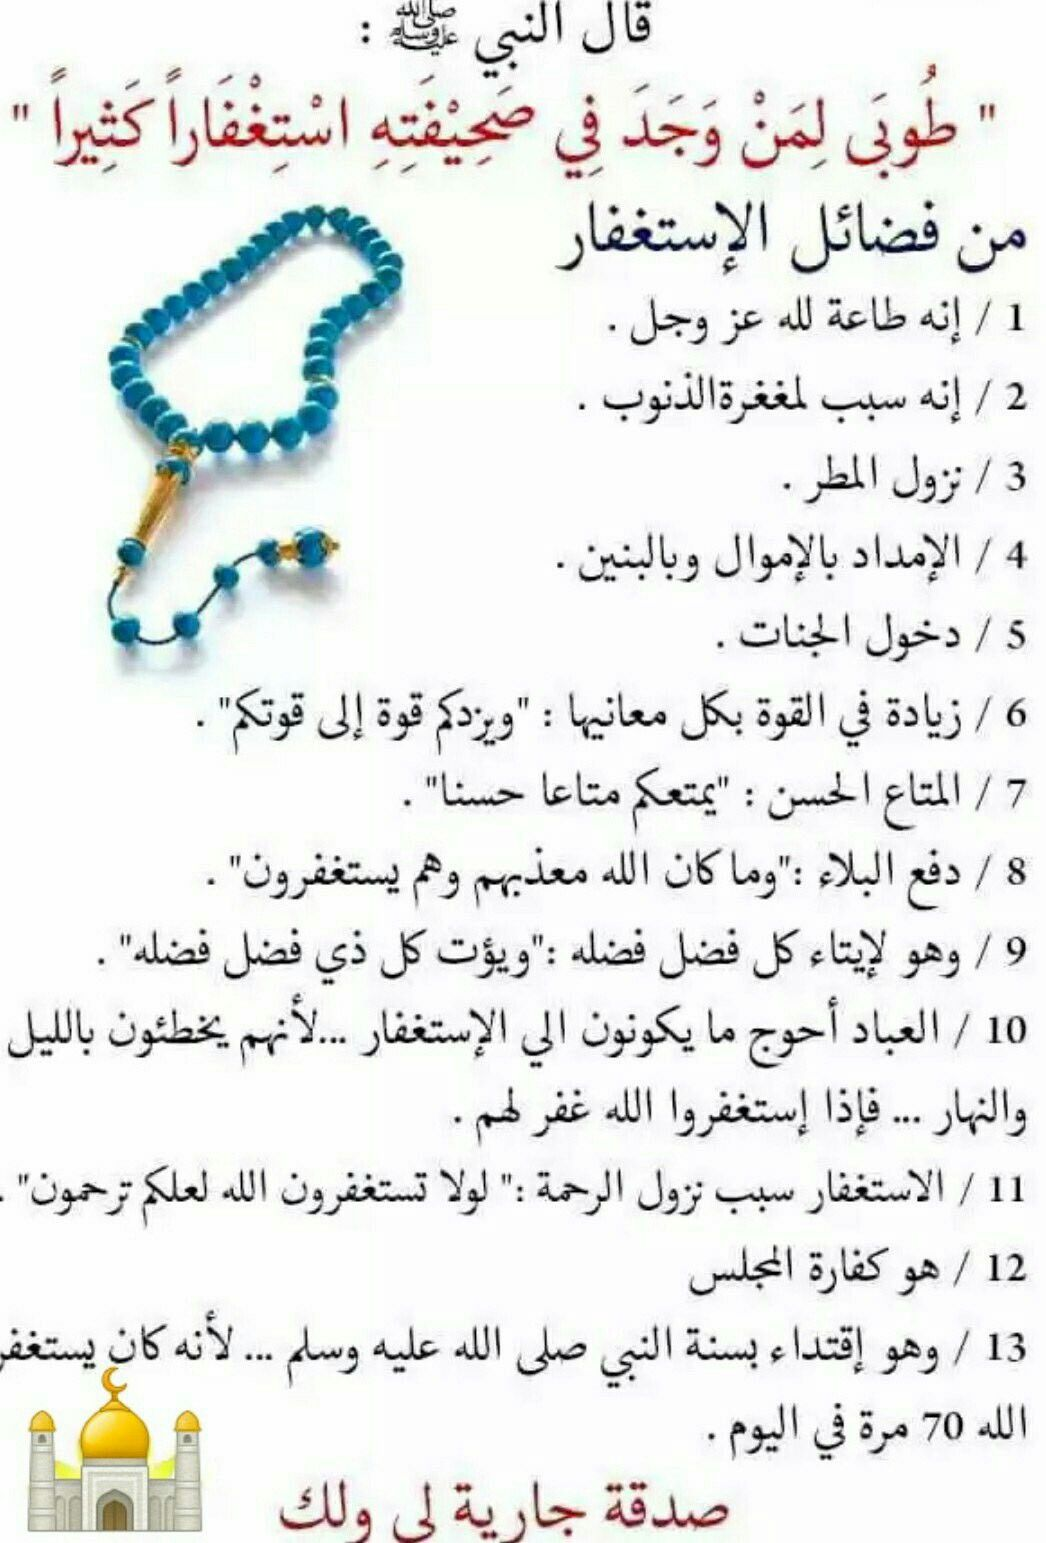 Pin By Rizk On إسلاميات Islamic Love Quotes Islamic Phrases Islam Facts